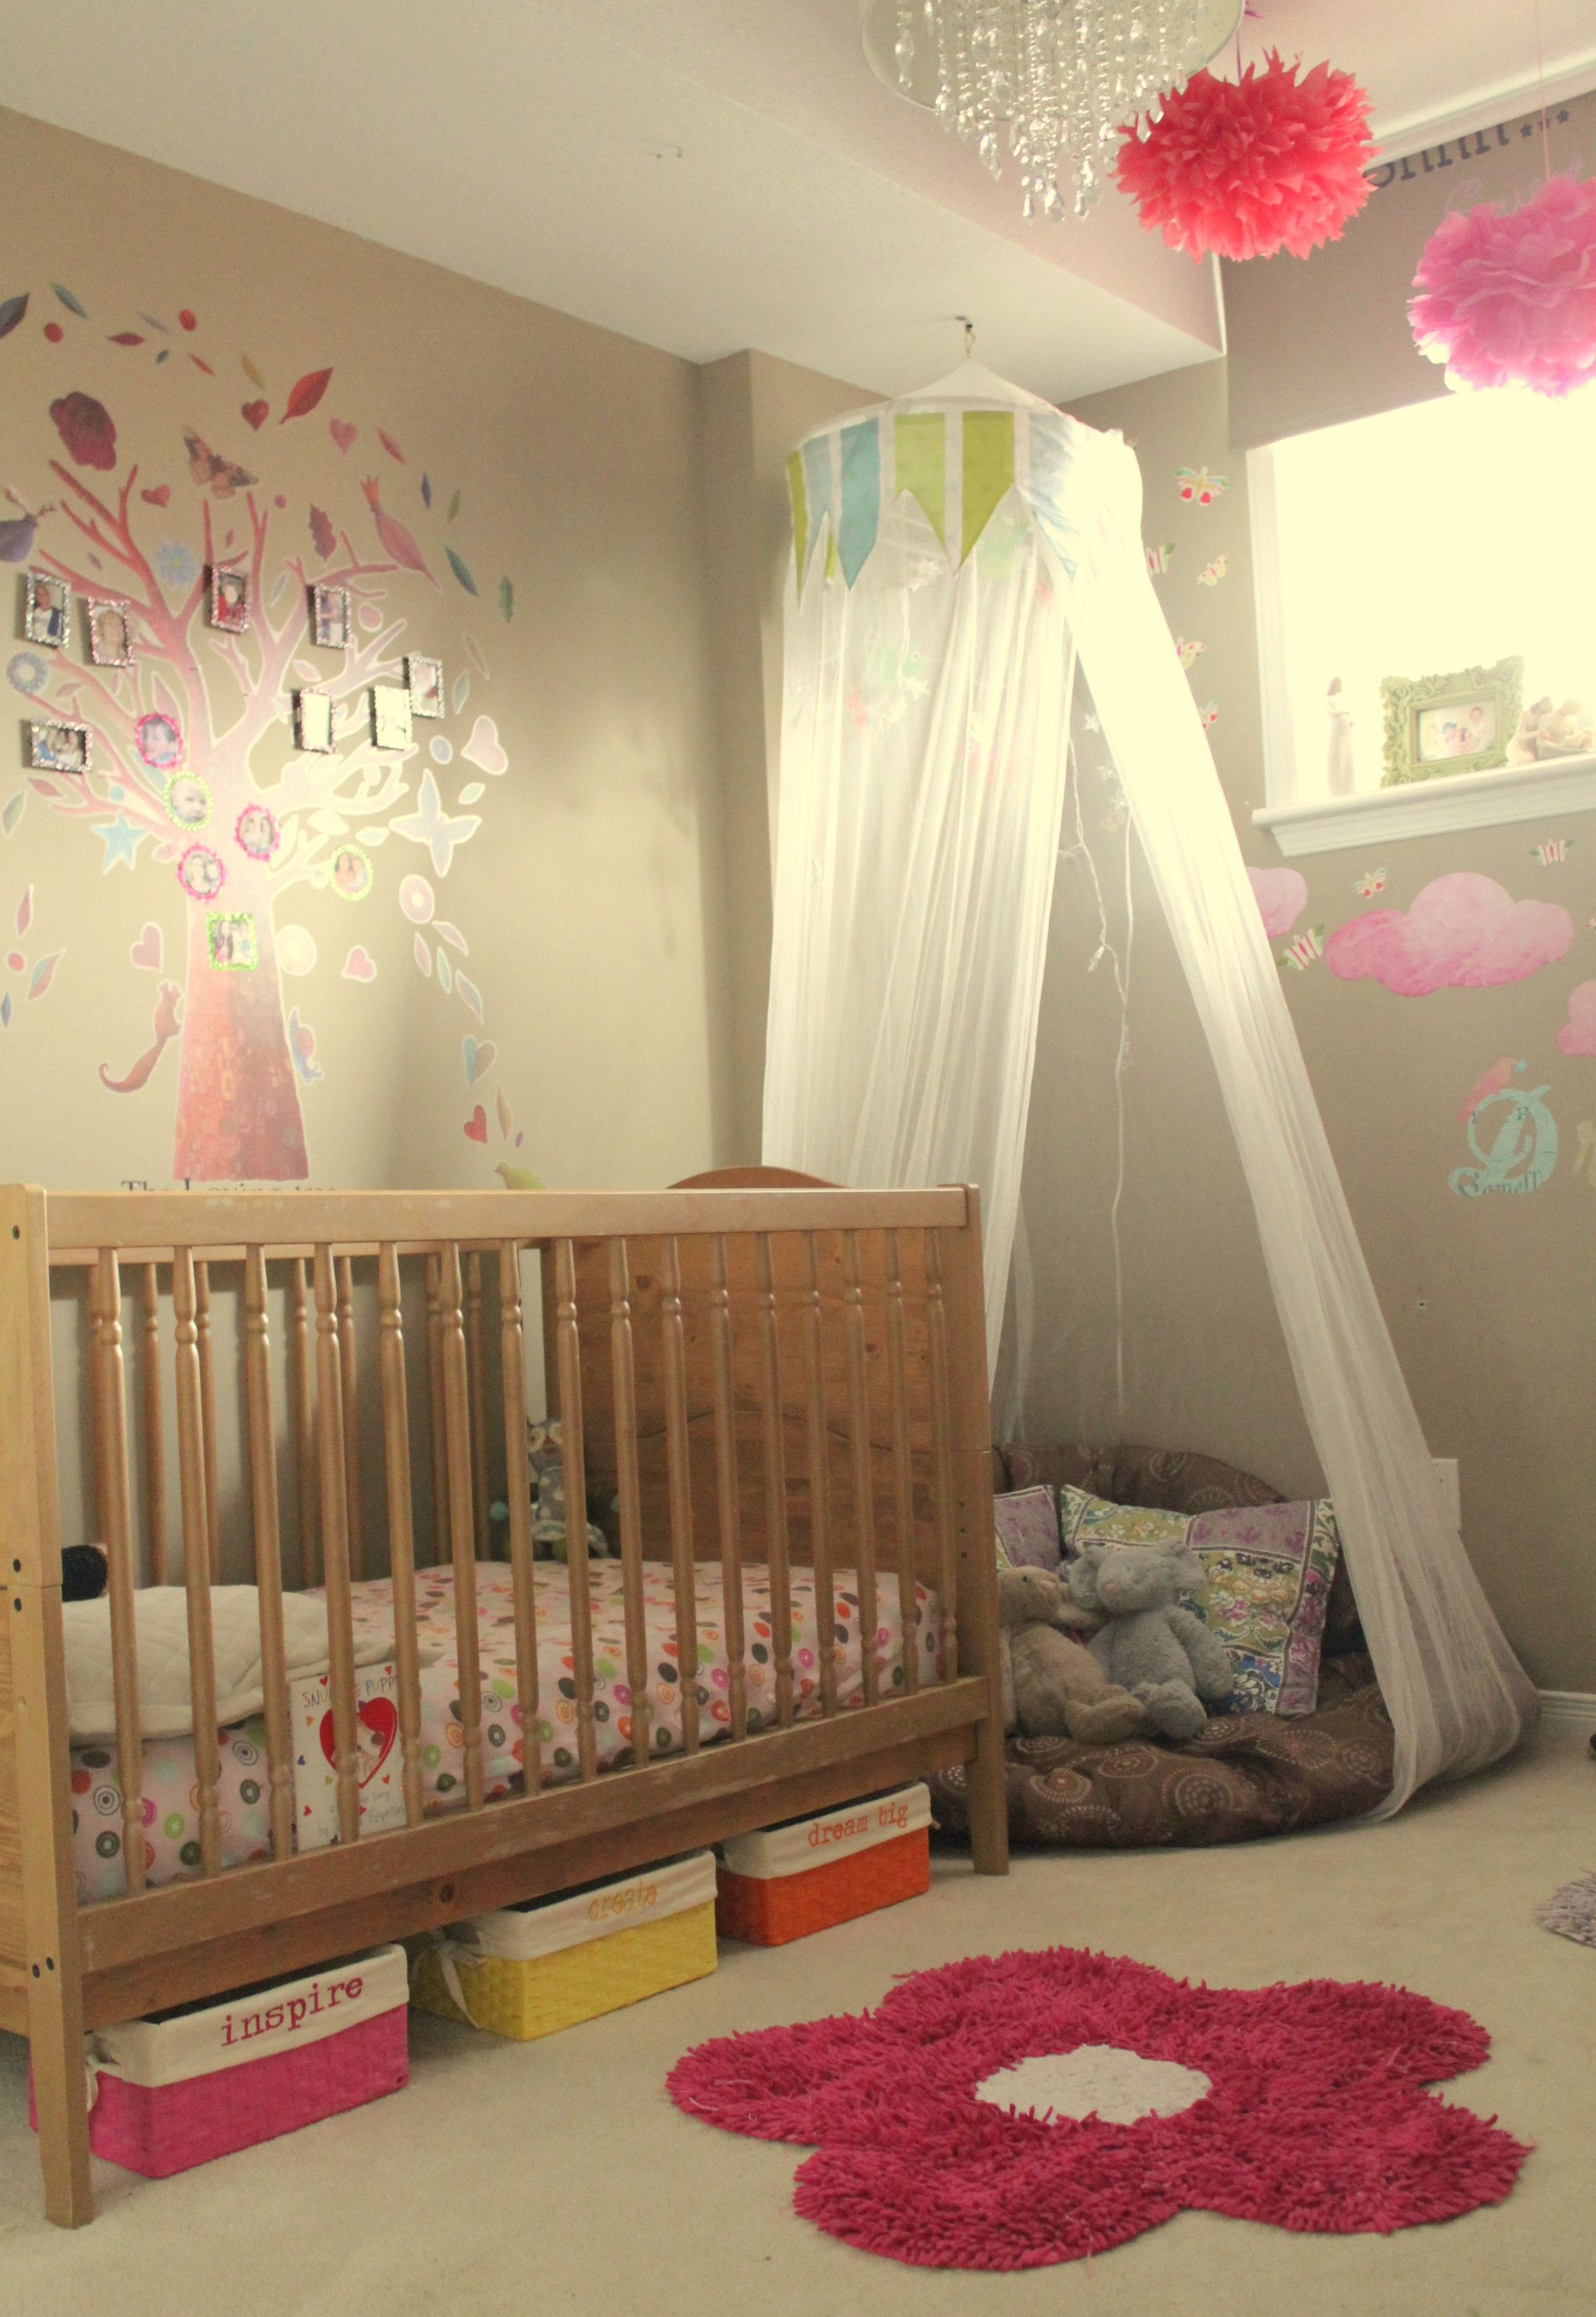 Toddler Girls Bedroom Ideas A Chic Toddler Room Fit For A Sweet Little Princess  Butterfly